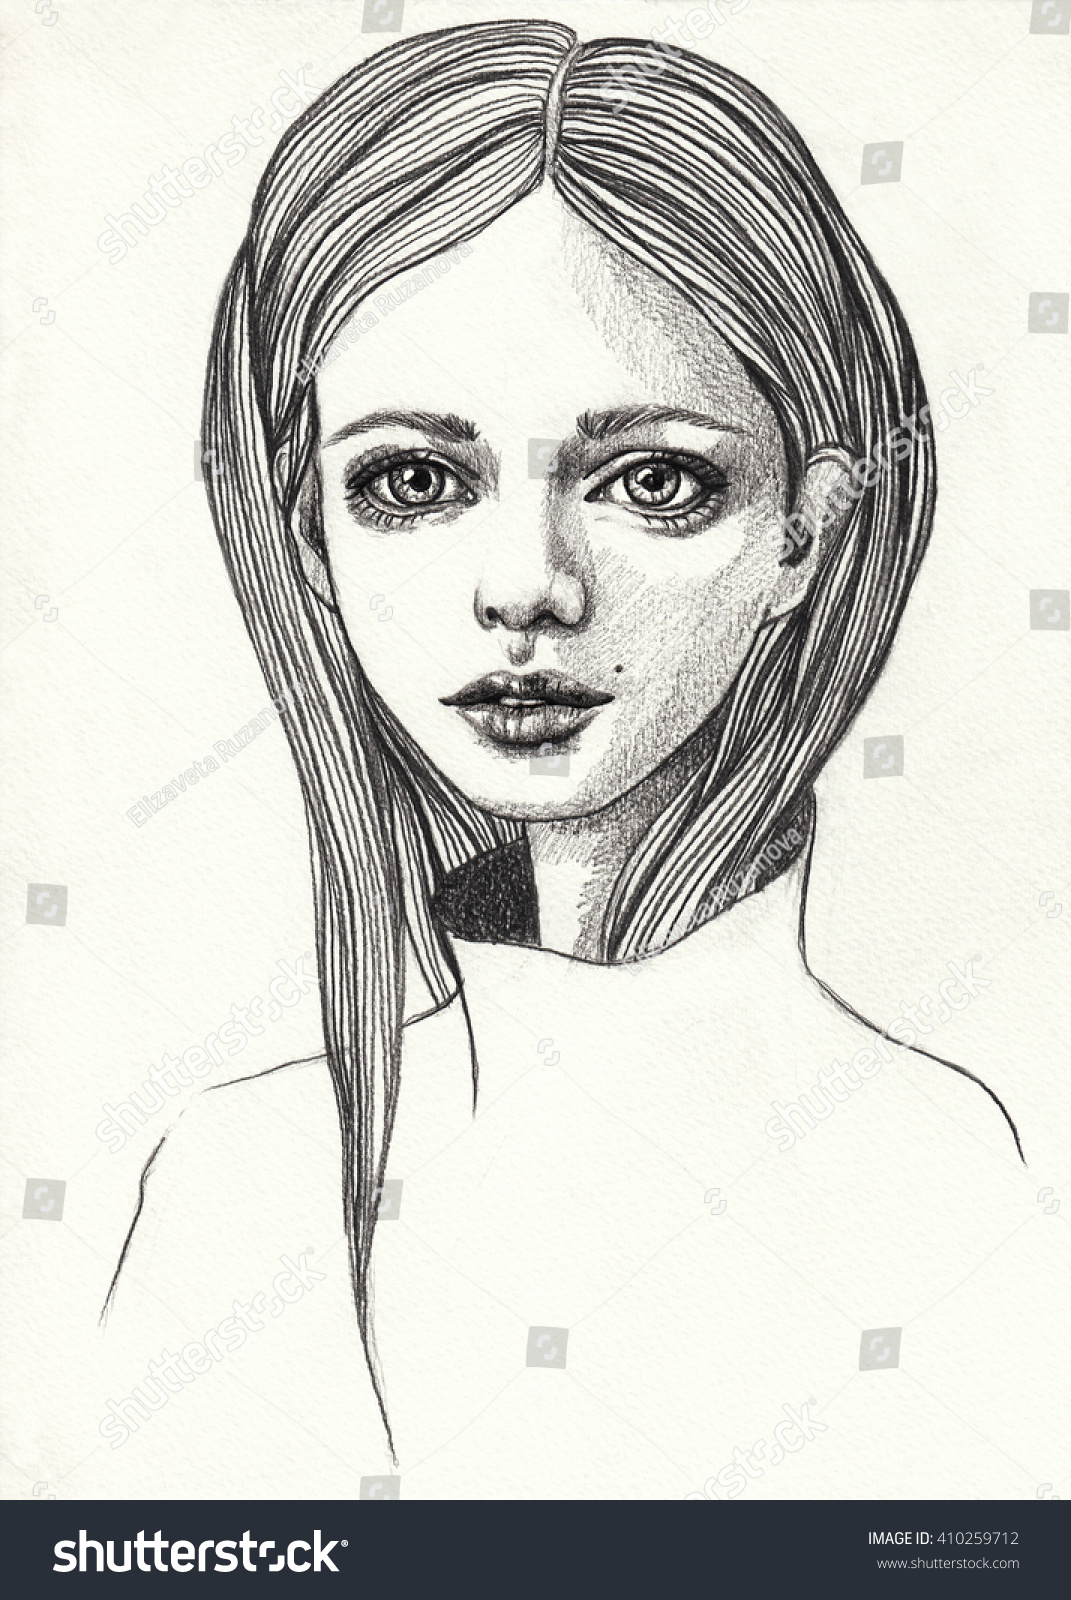 Portrait of a beautiful girl sketch pencil fashion illustration on textured background